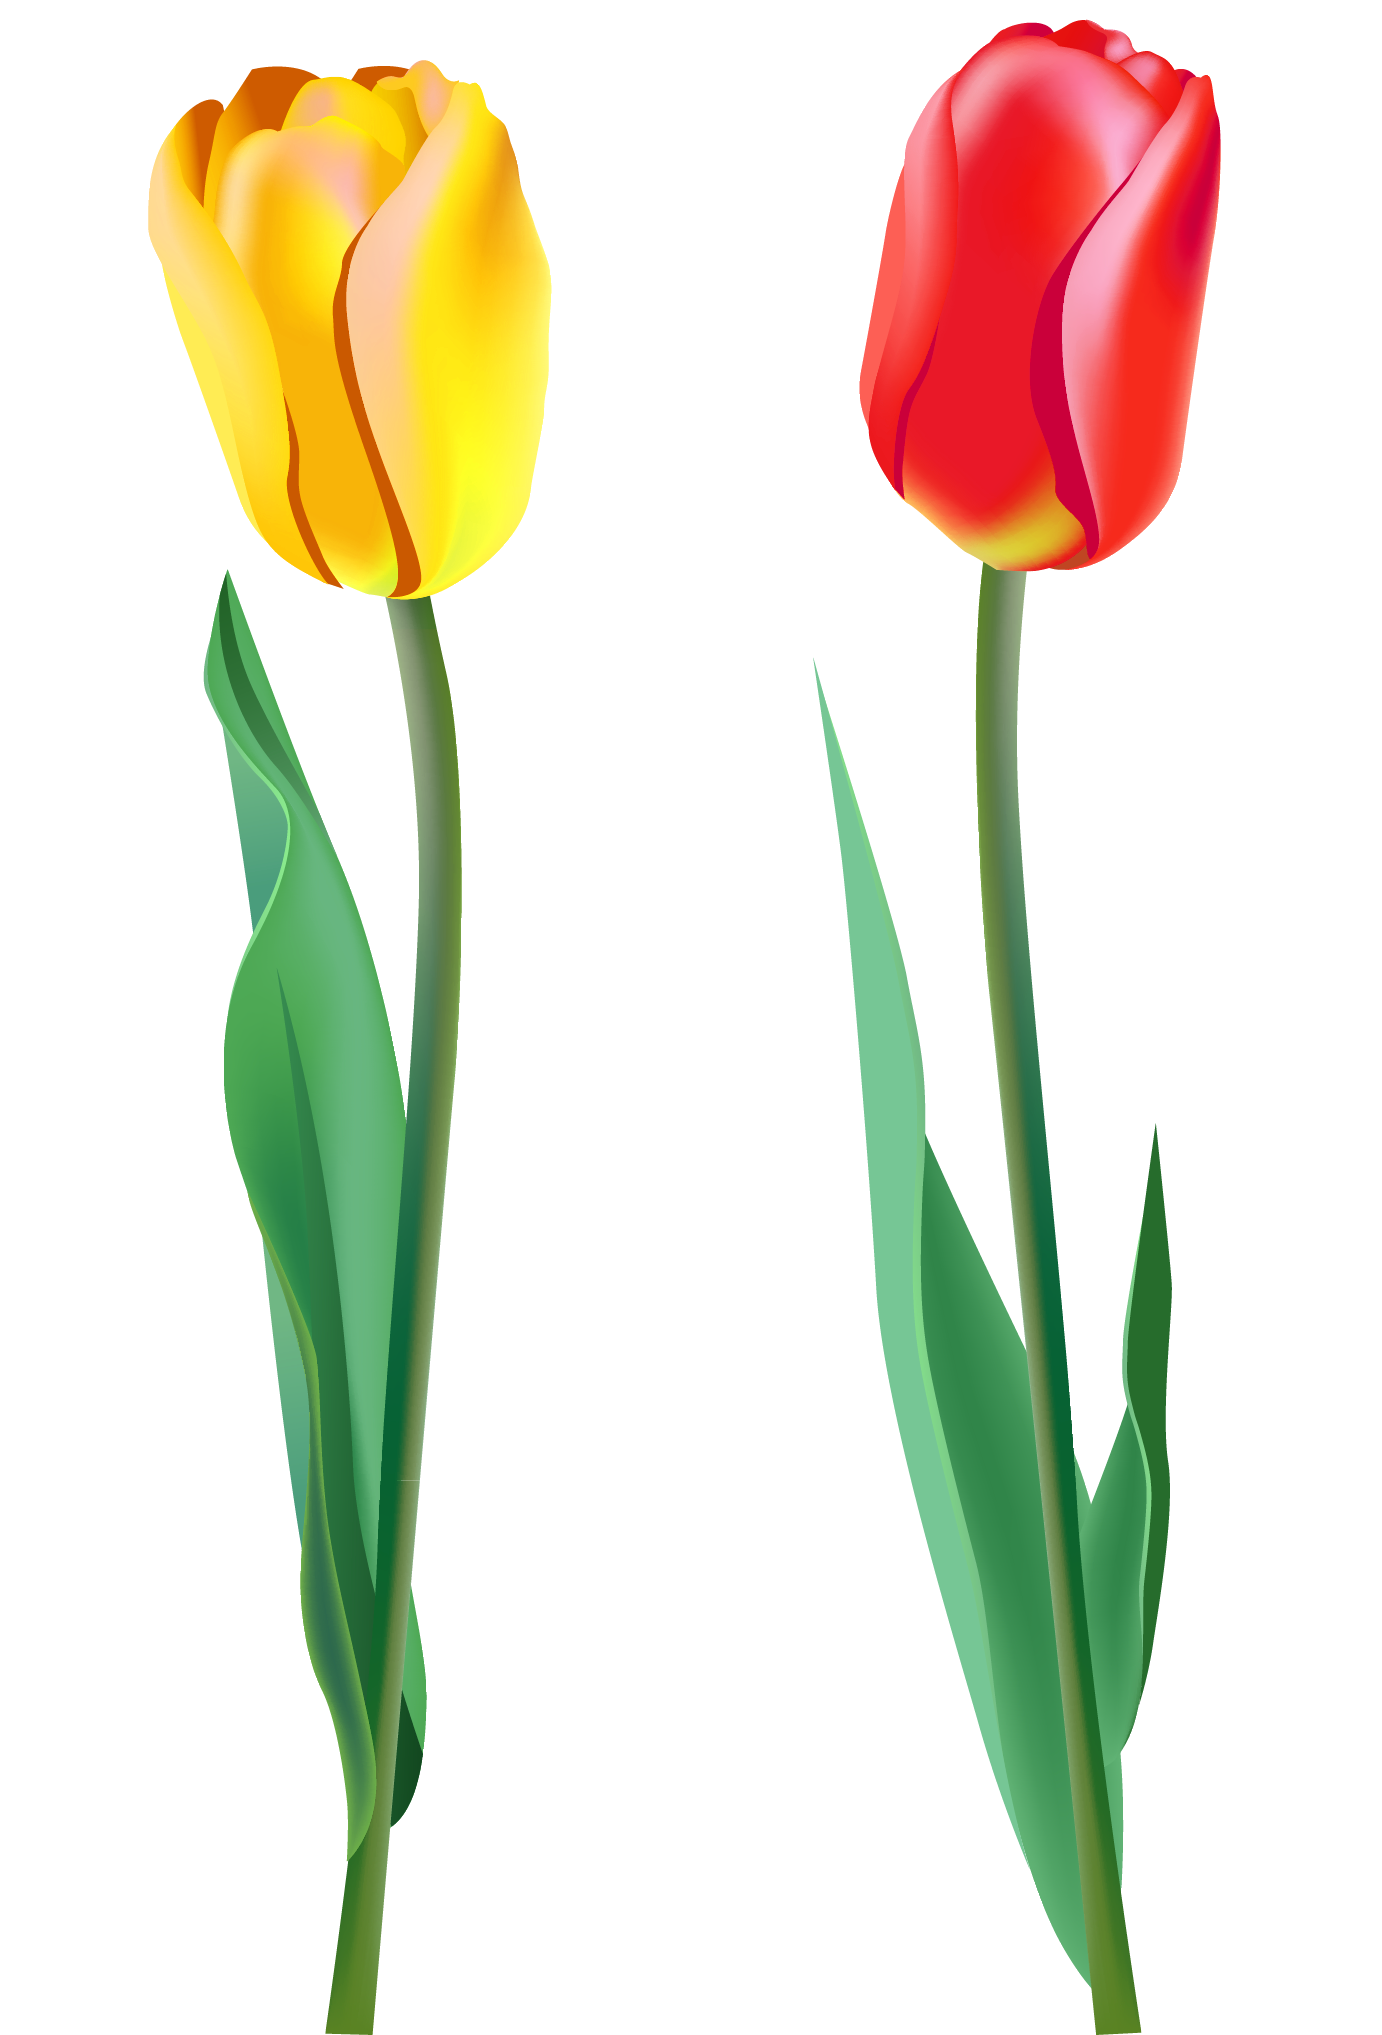 Holidays clipart spring. Tulips png gallery yopriceville